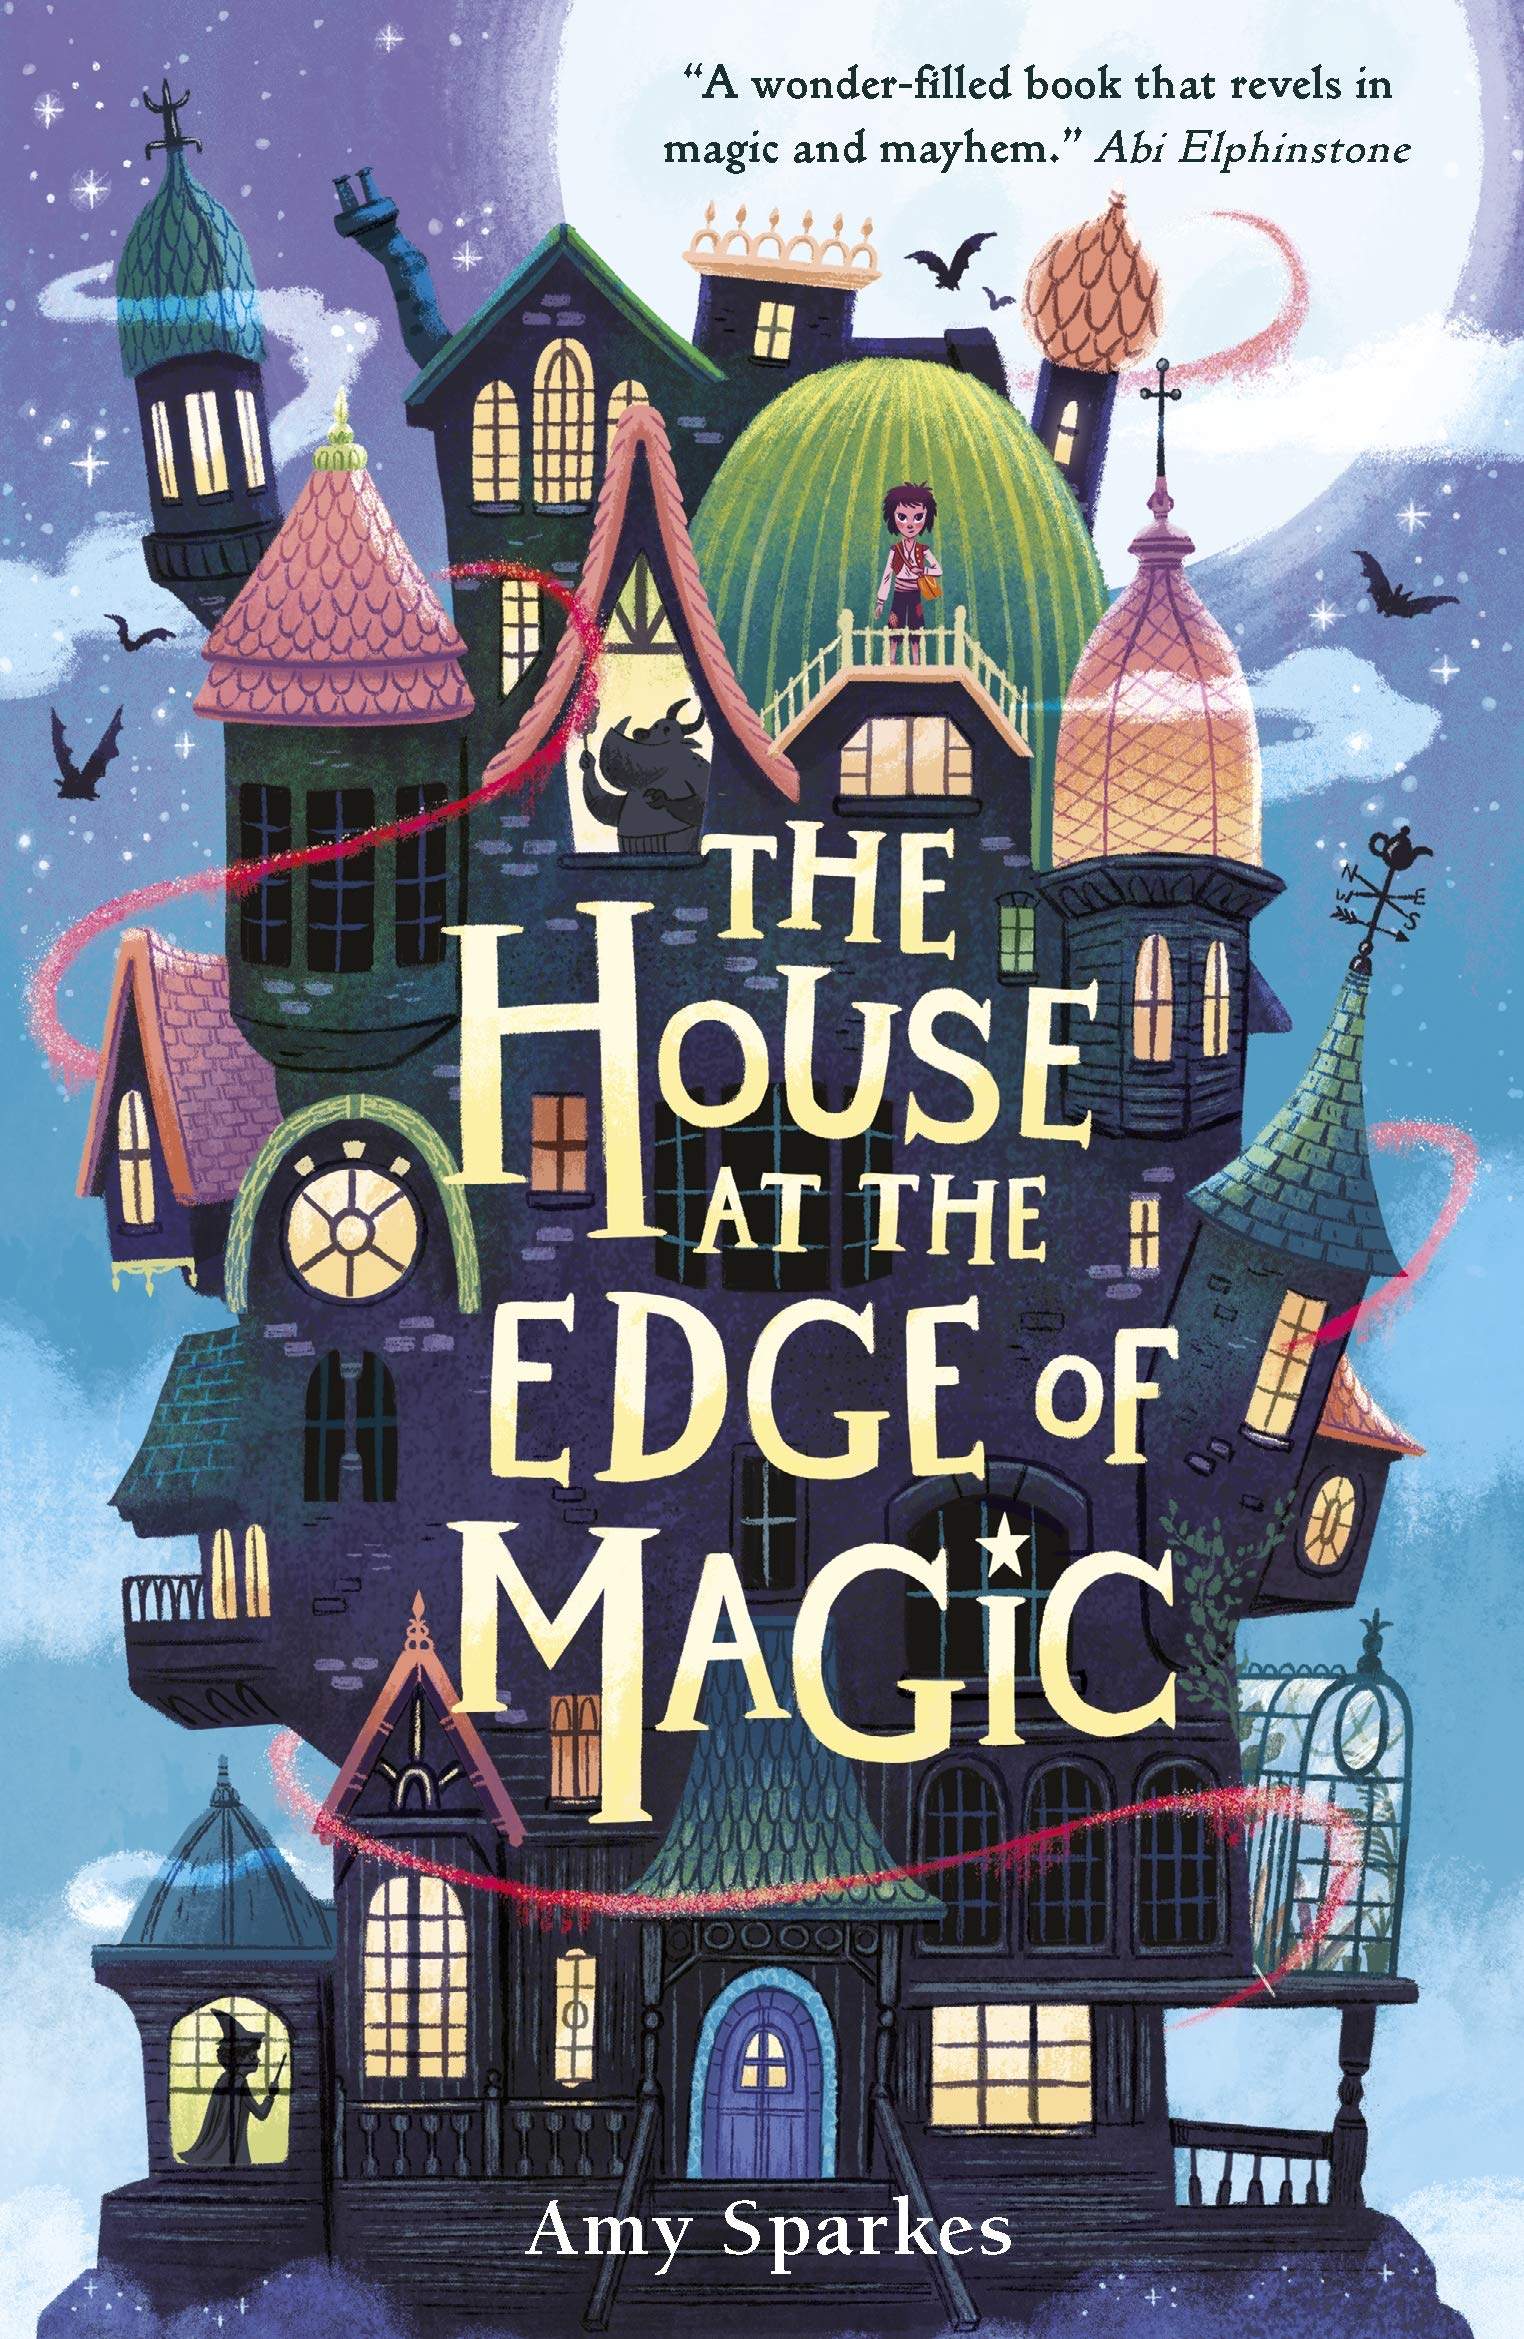 Amy Sparkes: The House at the Edge of Magic